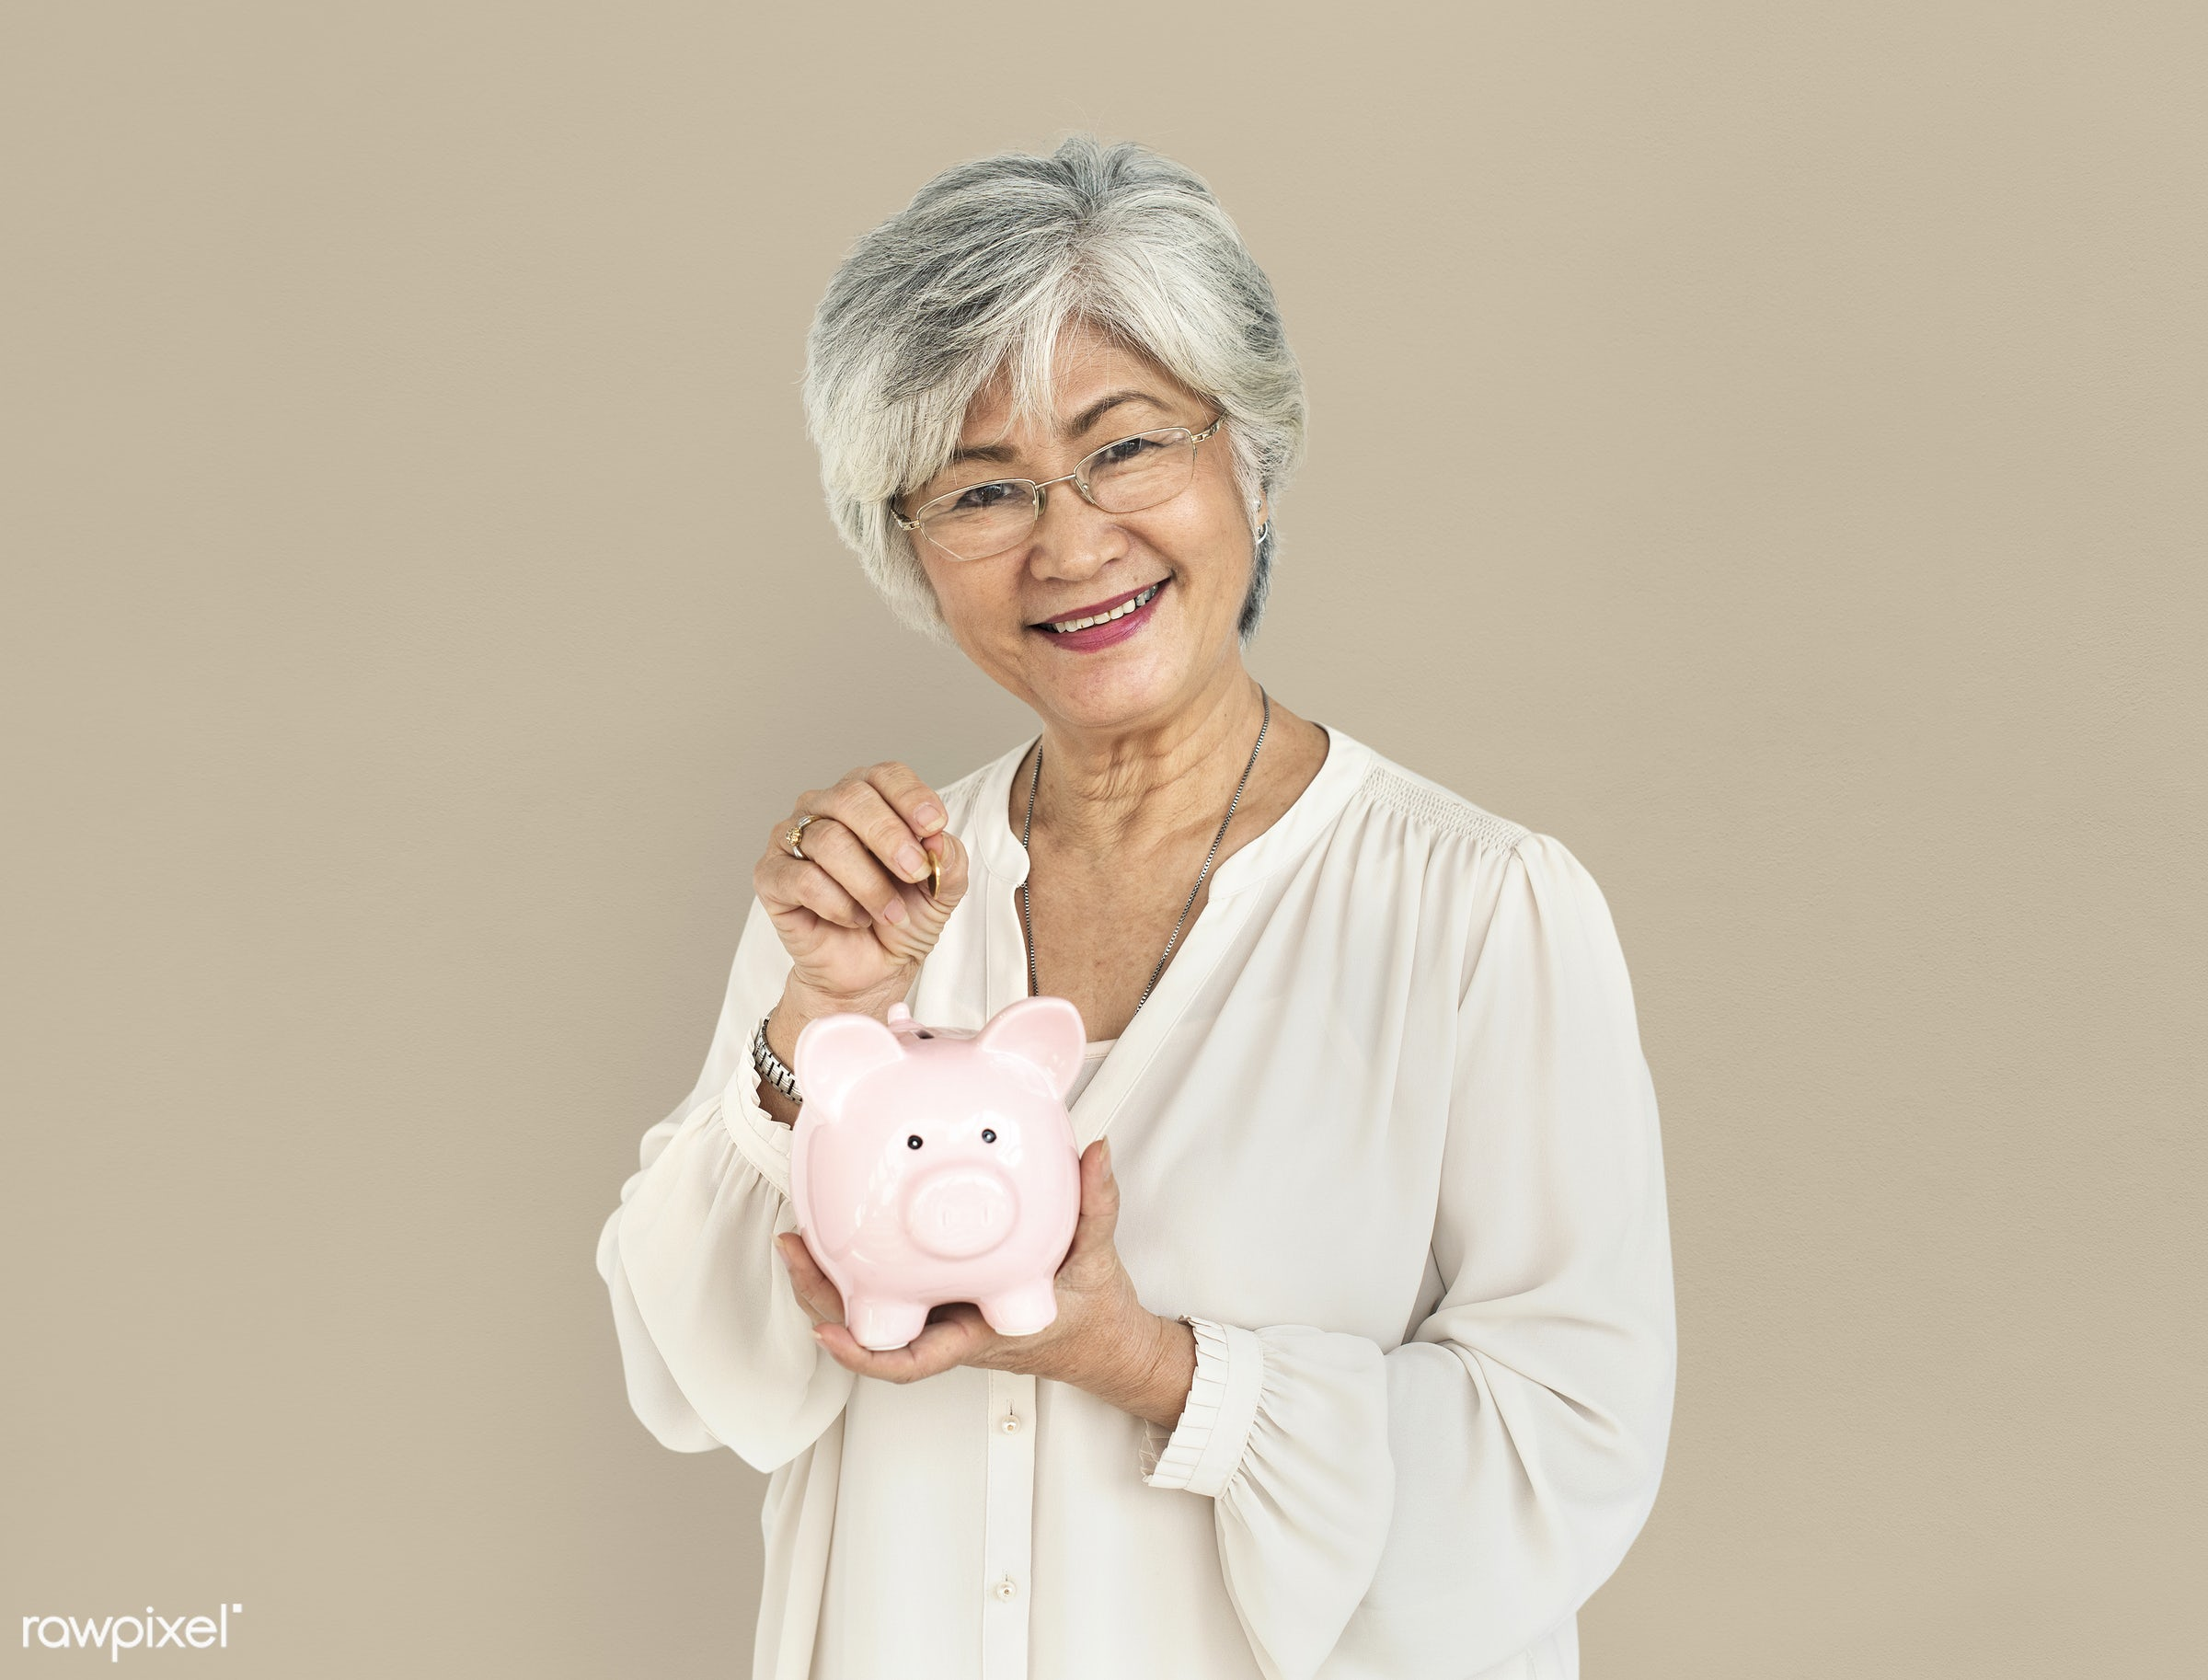 studio, expression, person, save, thrift-box, people, asian, woman, cheerful, smiling, isolated, happiness, portrait,...